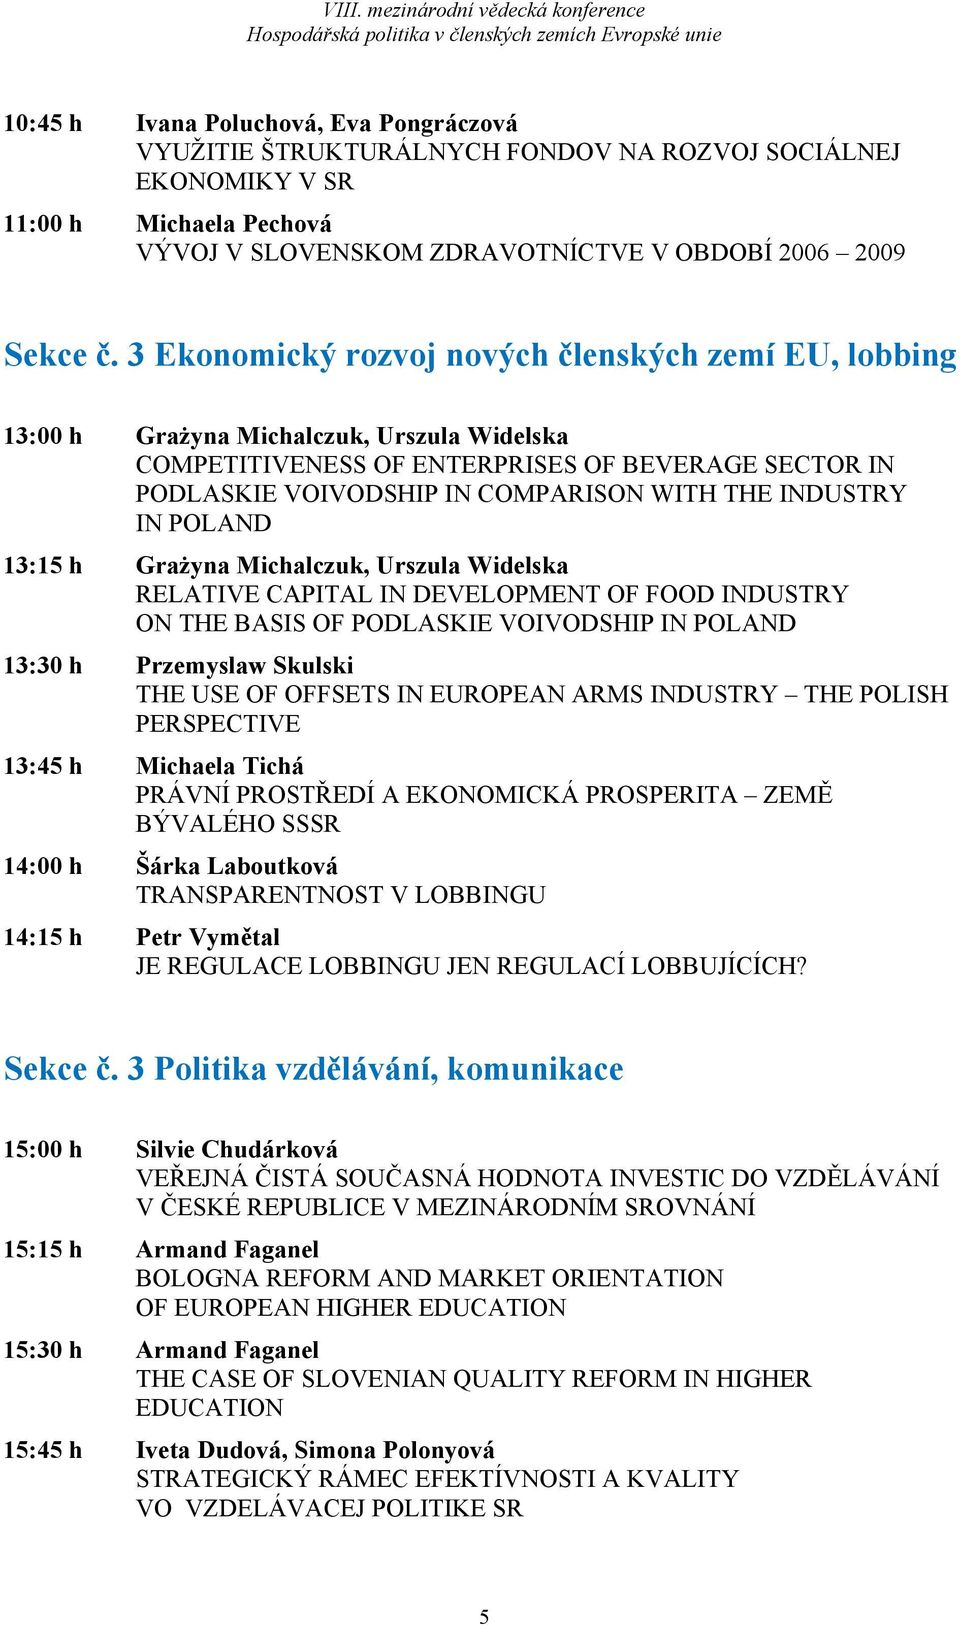 INDUSTRY IN POLAND 13:15 h Grażyna Michalczuk, Urszula Widelska RELATIVE CAPITAL IN DEVELOPMENT OF FOOD INDUSTRY ON THE BASIS OF PODLASKIE VOIVODSHIP IN POLAND 13:30 h Przemyslaw Skulski THE USE OF